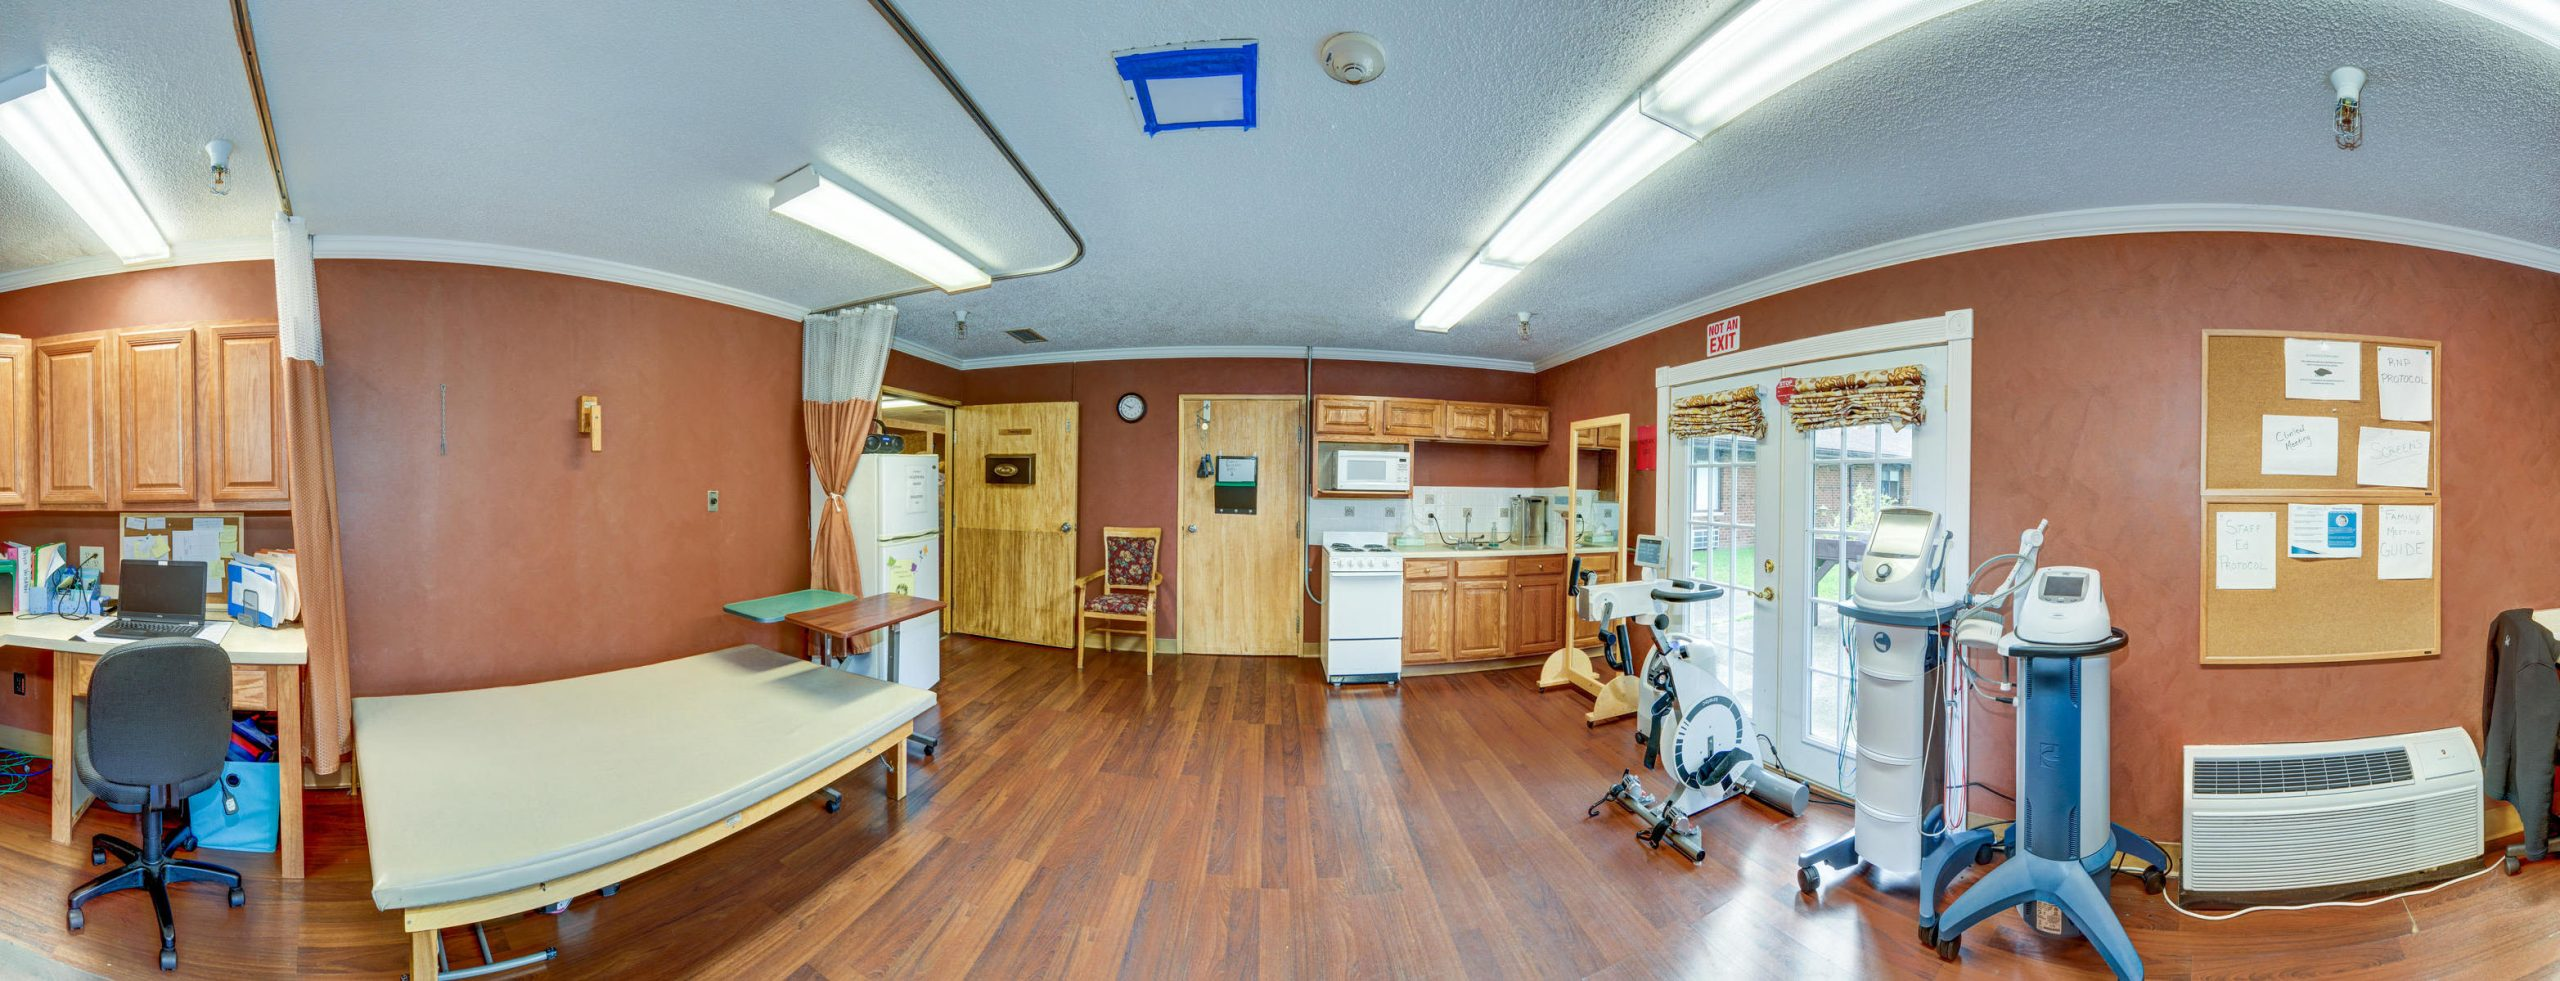 Panoramic view of Stonerise Bridgeport Therapy and Rehabilitation room with equipment